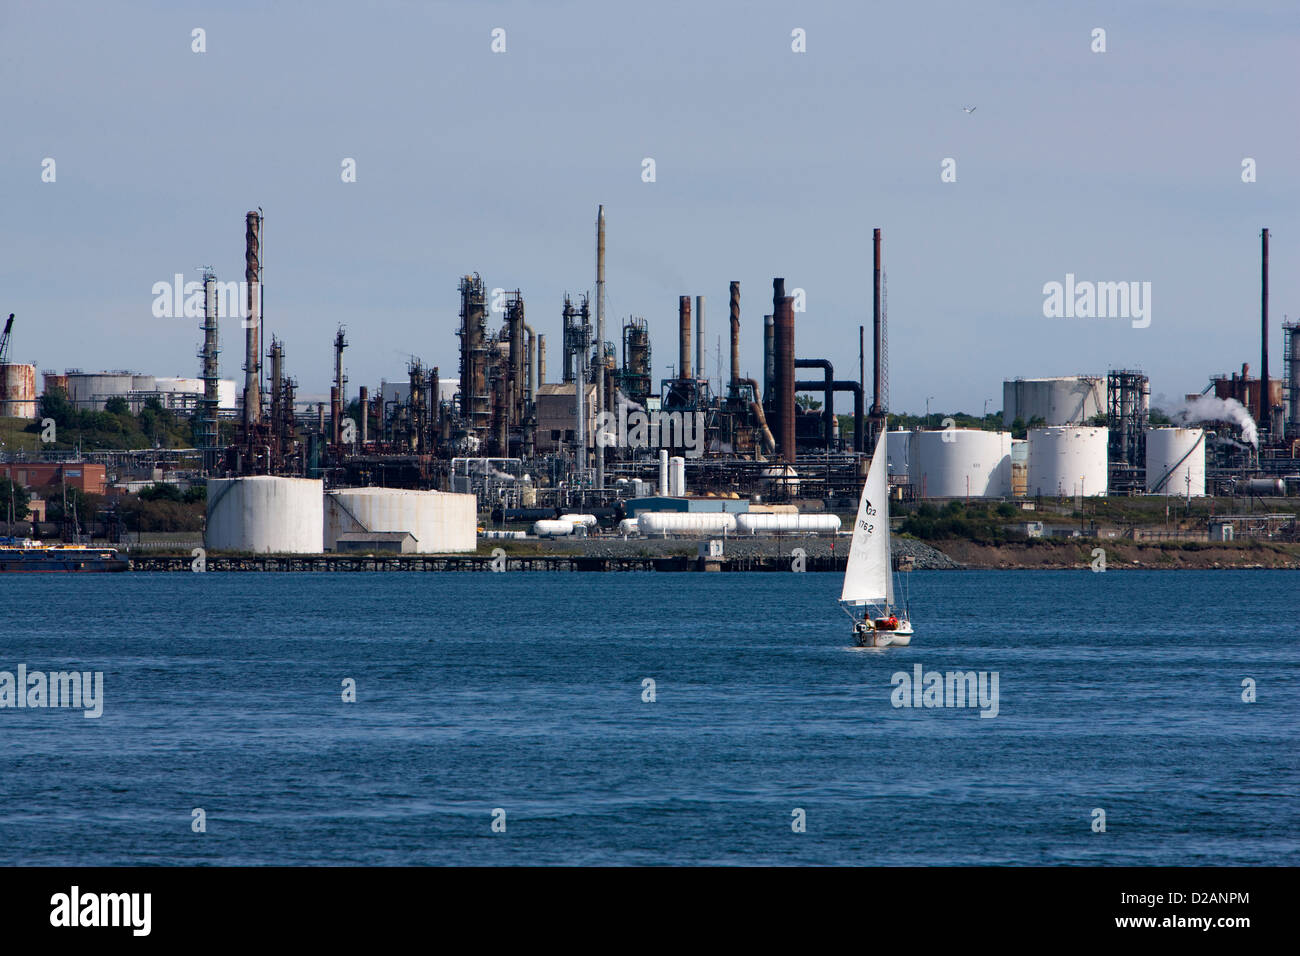 Petro chemical works and oil refinery in Dartmouth, Nova Scotia - Stock Image